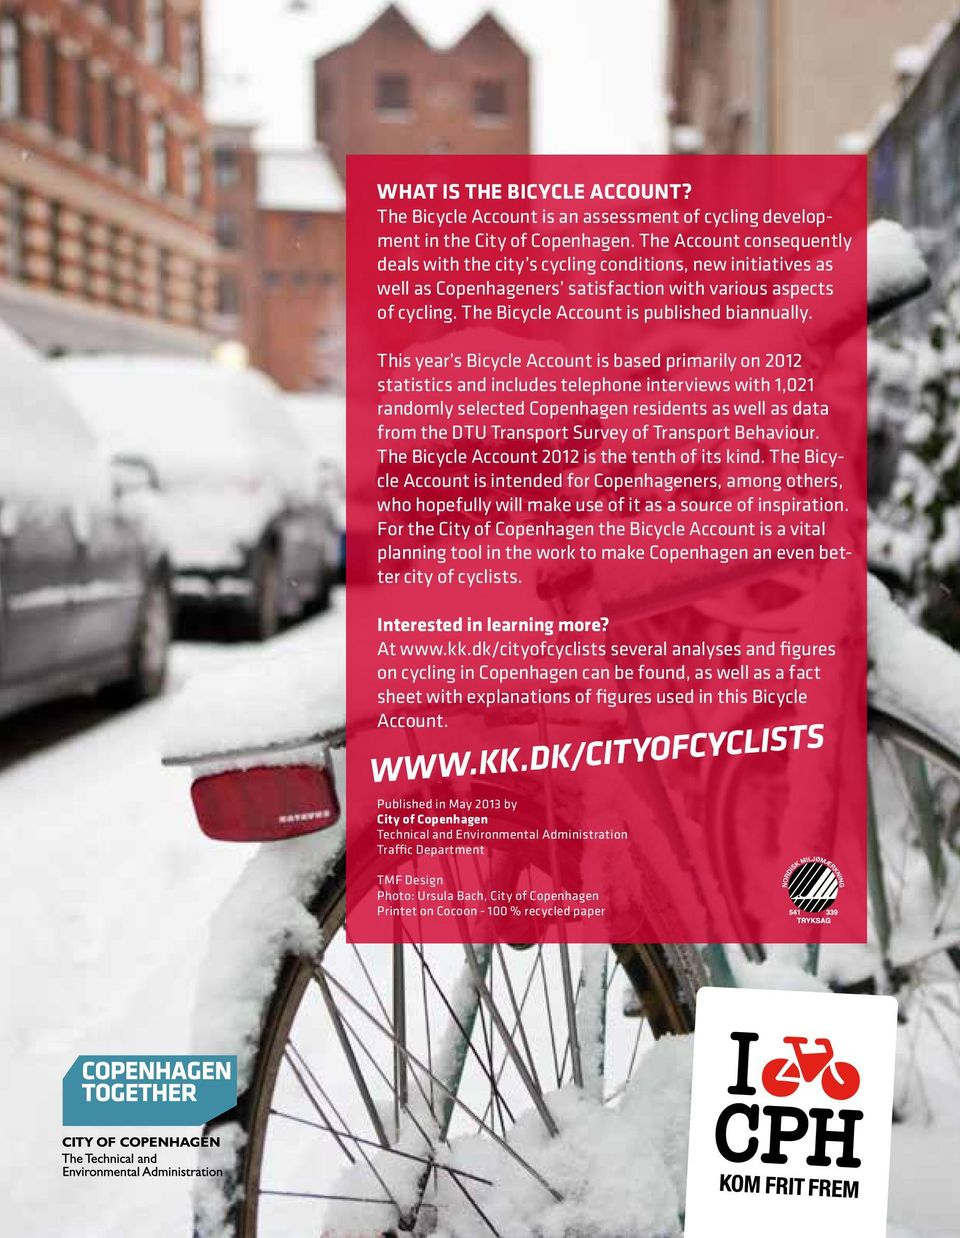 This year s Bicycle Account is based primarily on 2012 statistics and includes telephone interviews with 1,021 randomly selected Copenhagen residents as well as data from the DTU Transport Survey of